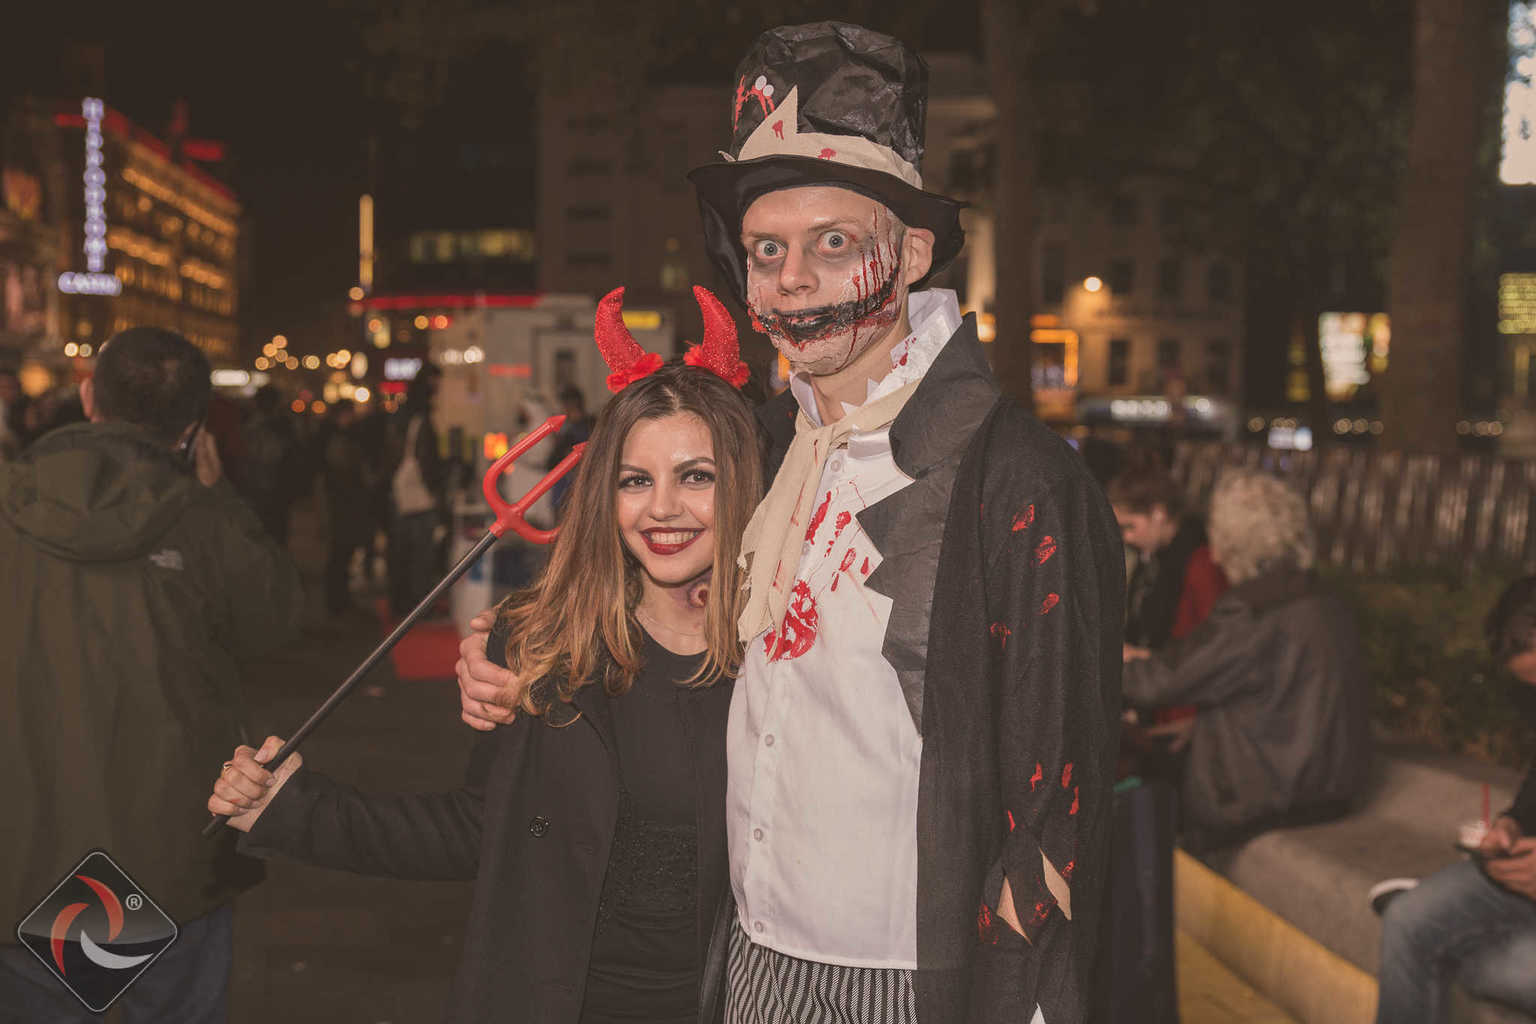 Devil Girl & Man in creepy halloween costume